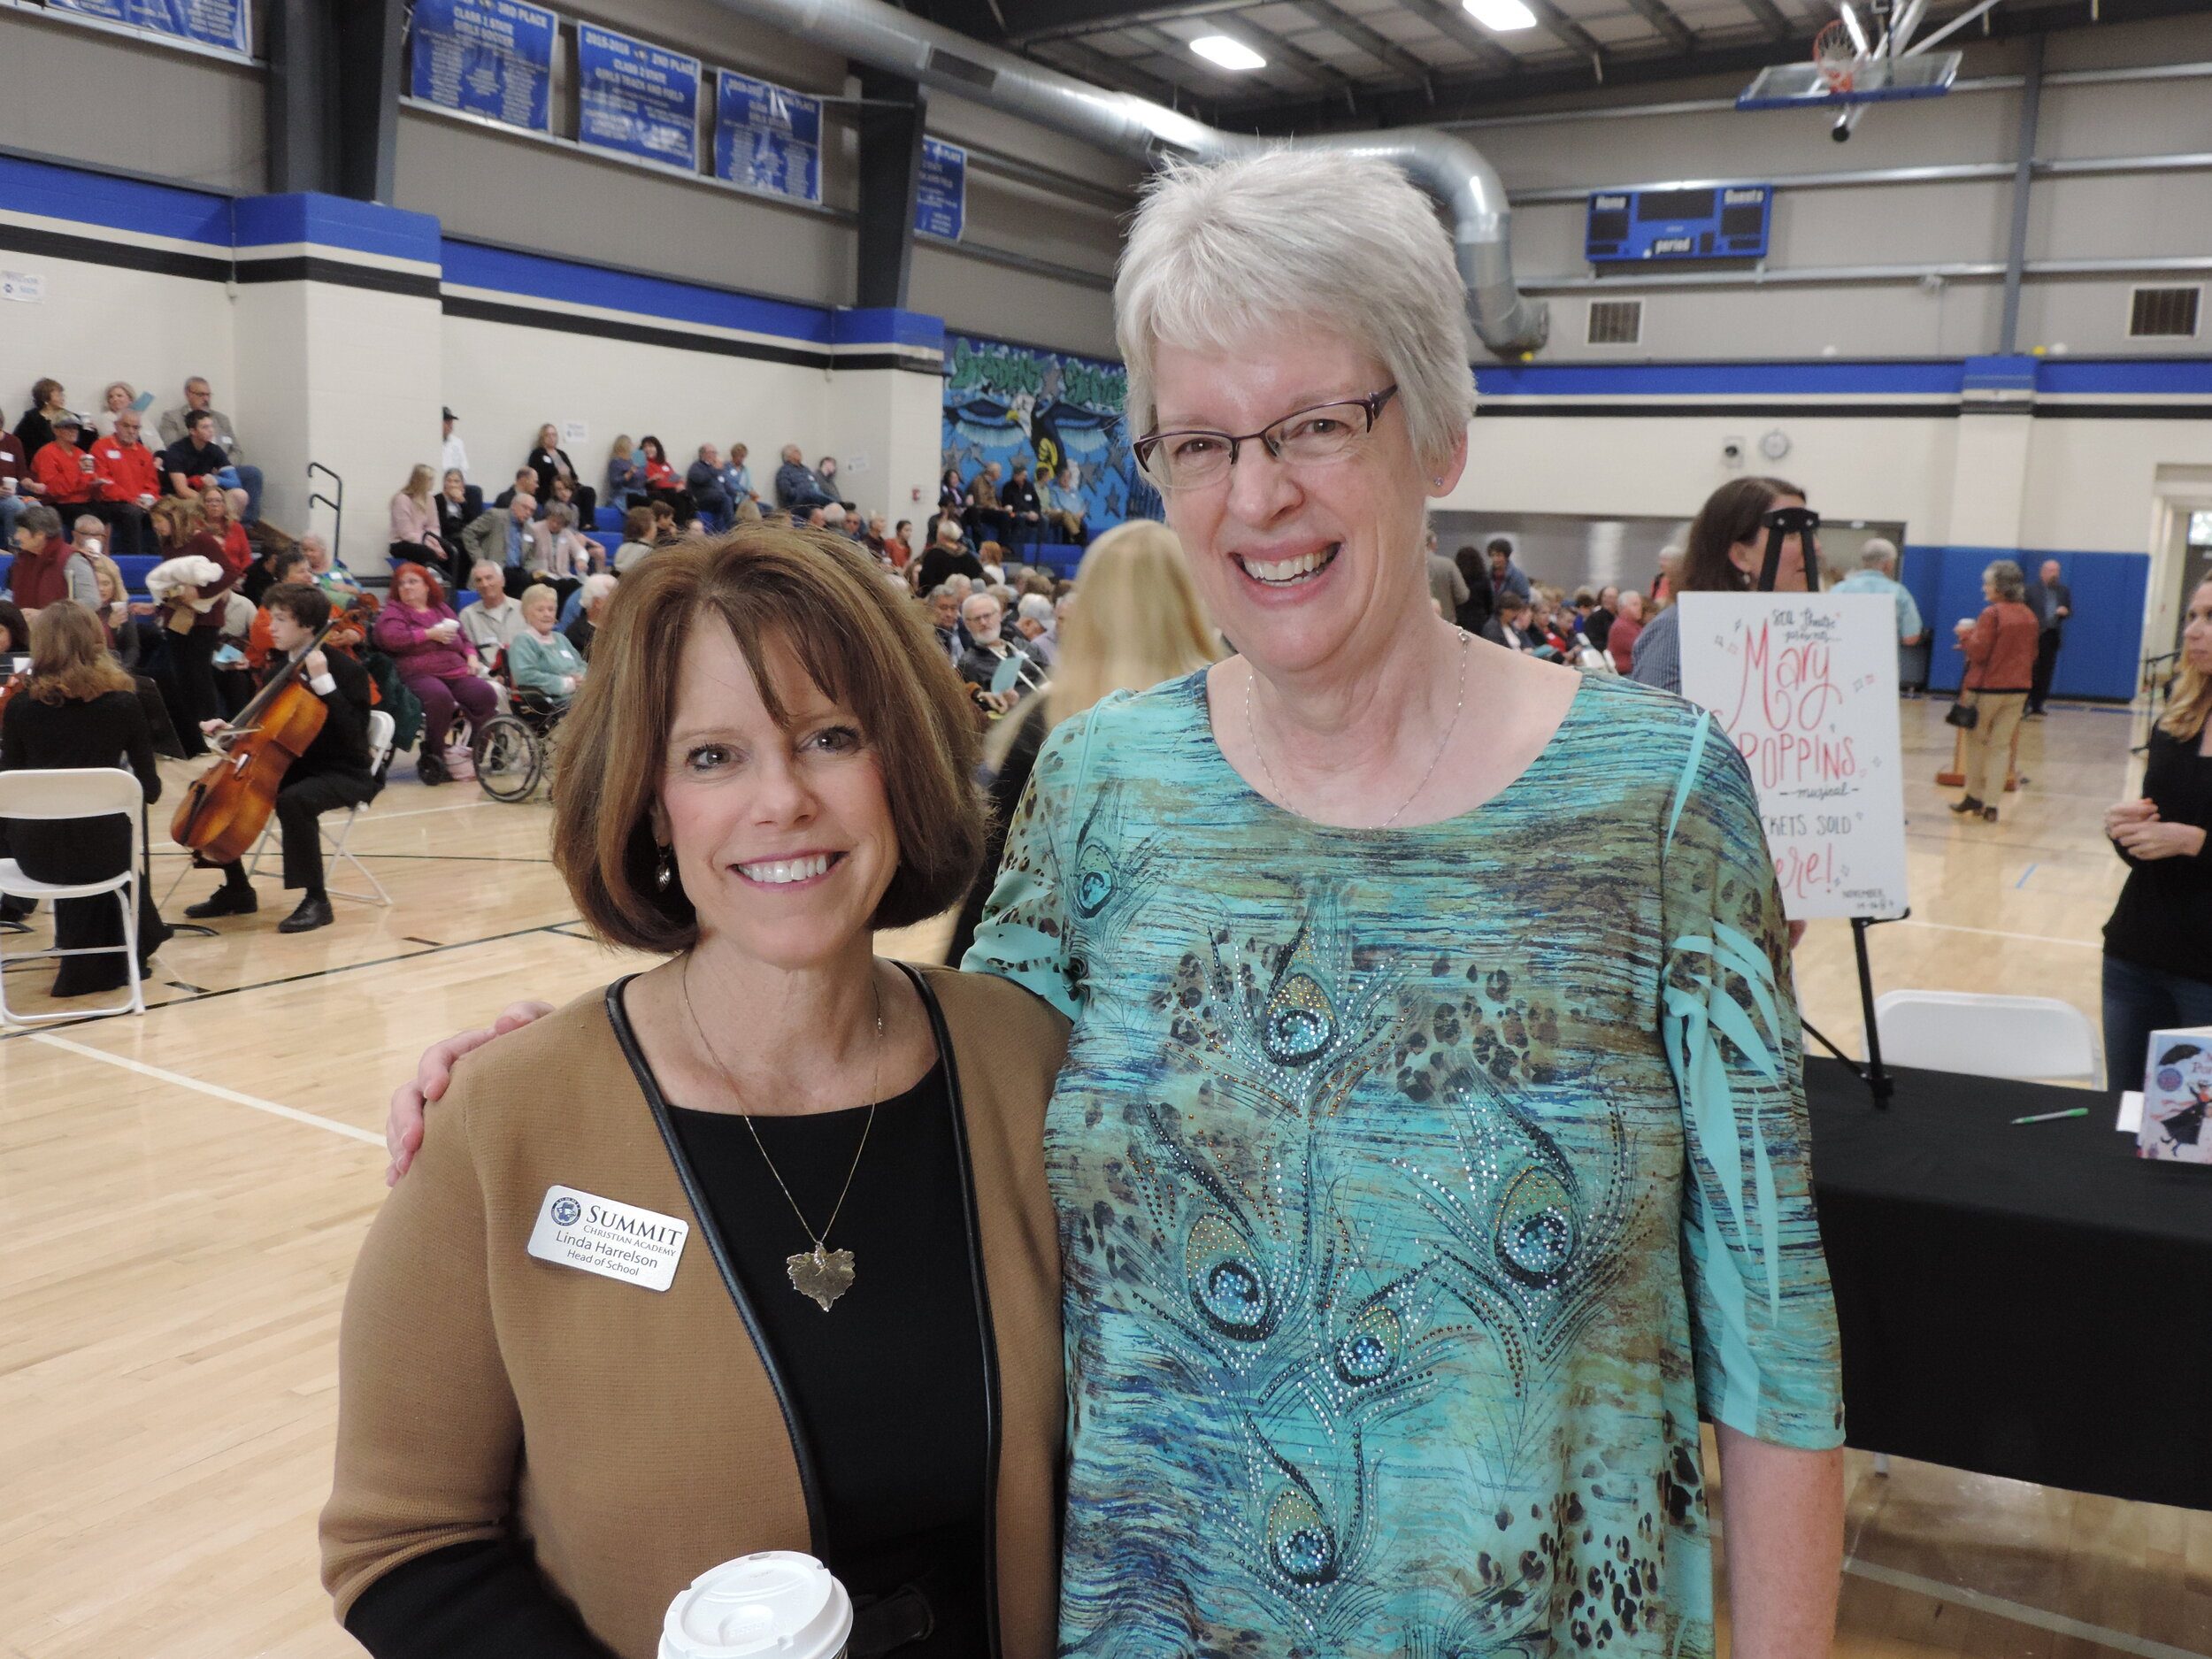 """Summit Christian Academy Co-Founder Lisa Seley was one of the honorary guests at SCA's annual Grandparents Day 2019 and is joined by SCA Head of School Linda Harrelson. """"When I helped found the school in 1989 and we only had 32 students I didn't realize God had such a BIG plan for His school. Wow! Watching SCA grow to 835 students, a full campus and athletic facilities, has been amazing over the last 30 years."""" (Photo courtesy Summit Christian Academy)"""